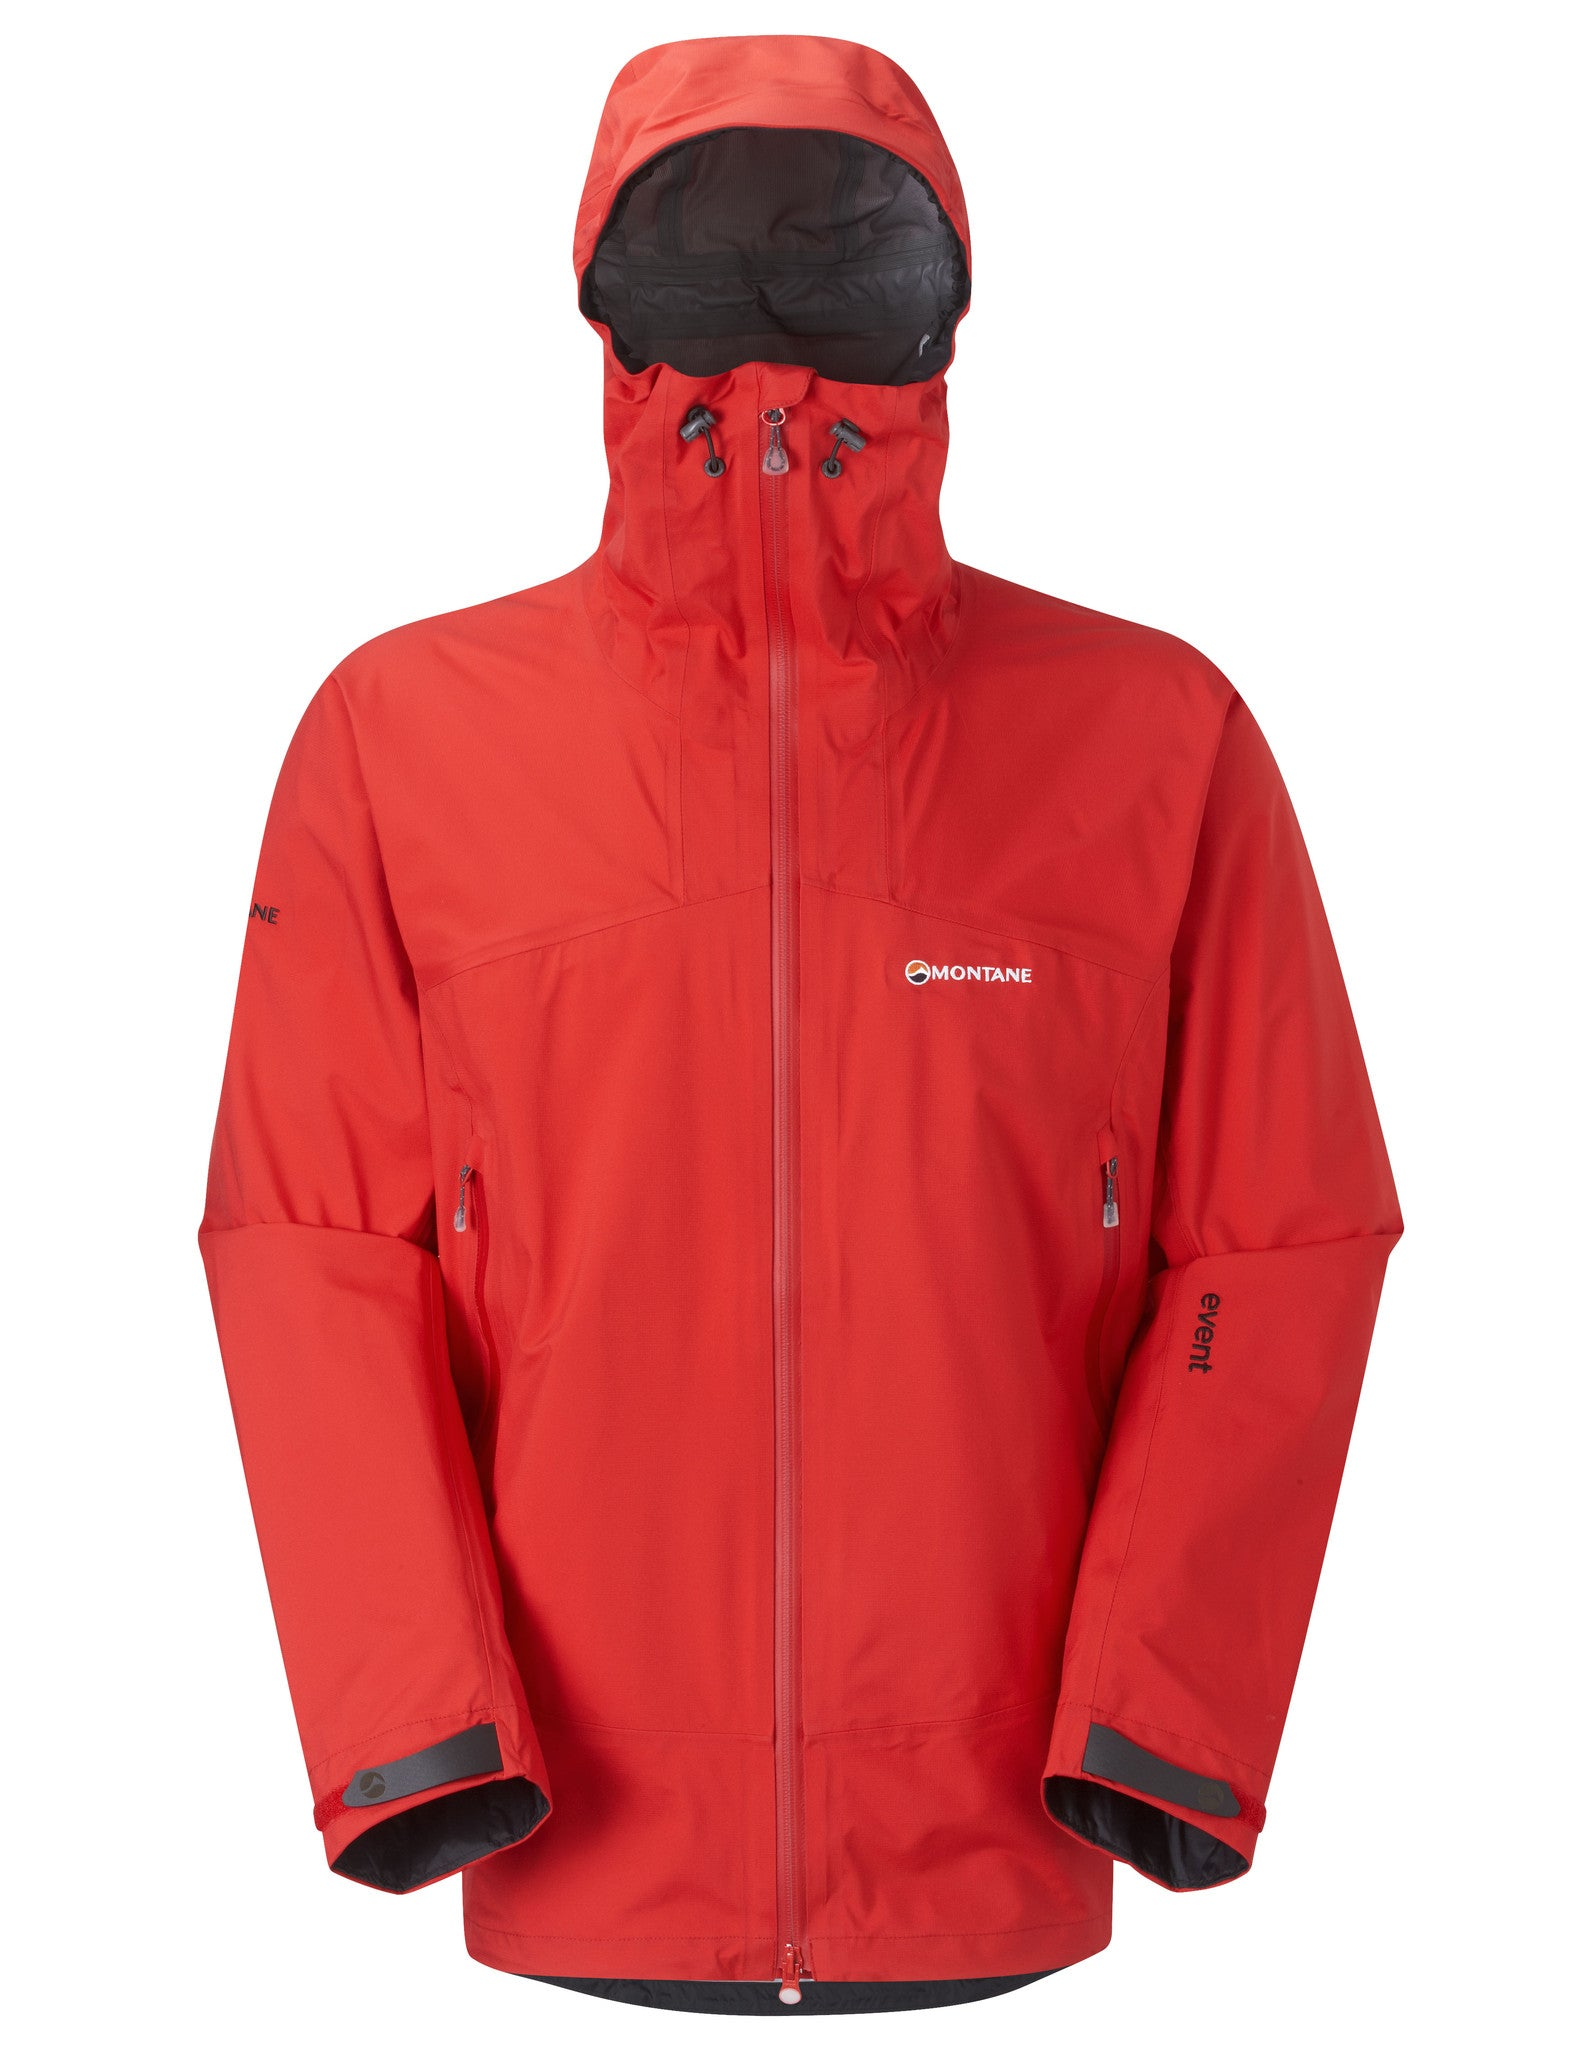 Montane-Women's Direct Ascent eVent¨ Jacket-Women's waterproof-Alpine Red-XS-Gearaholic.com.sg